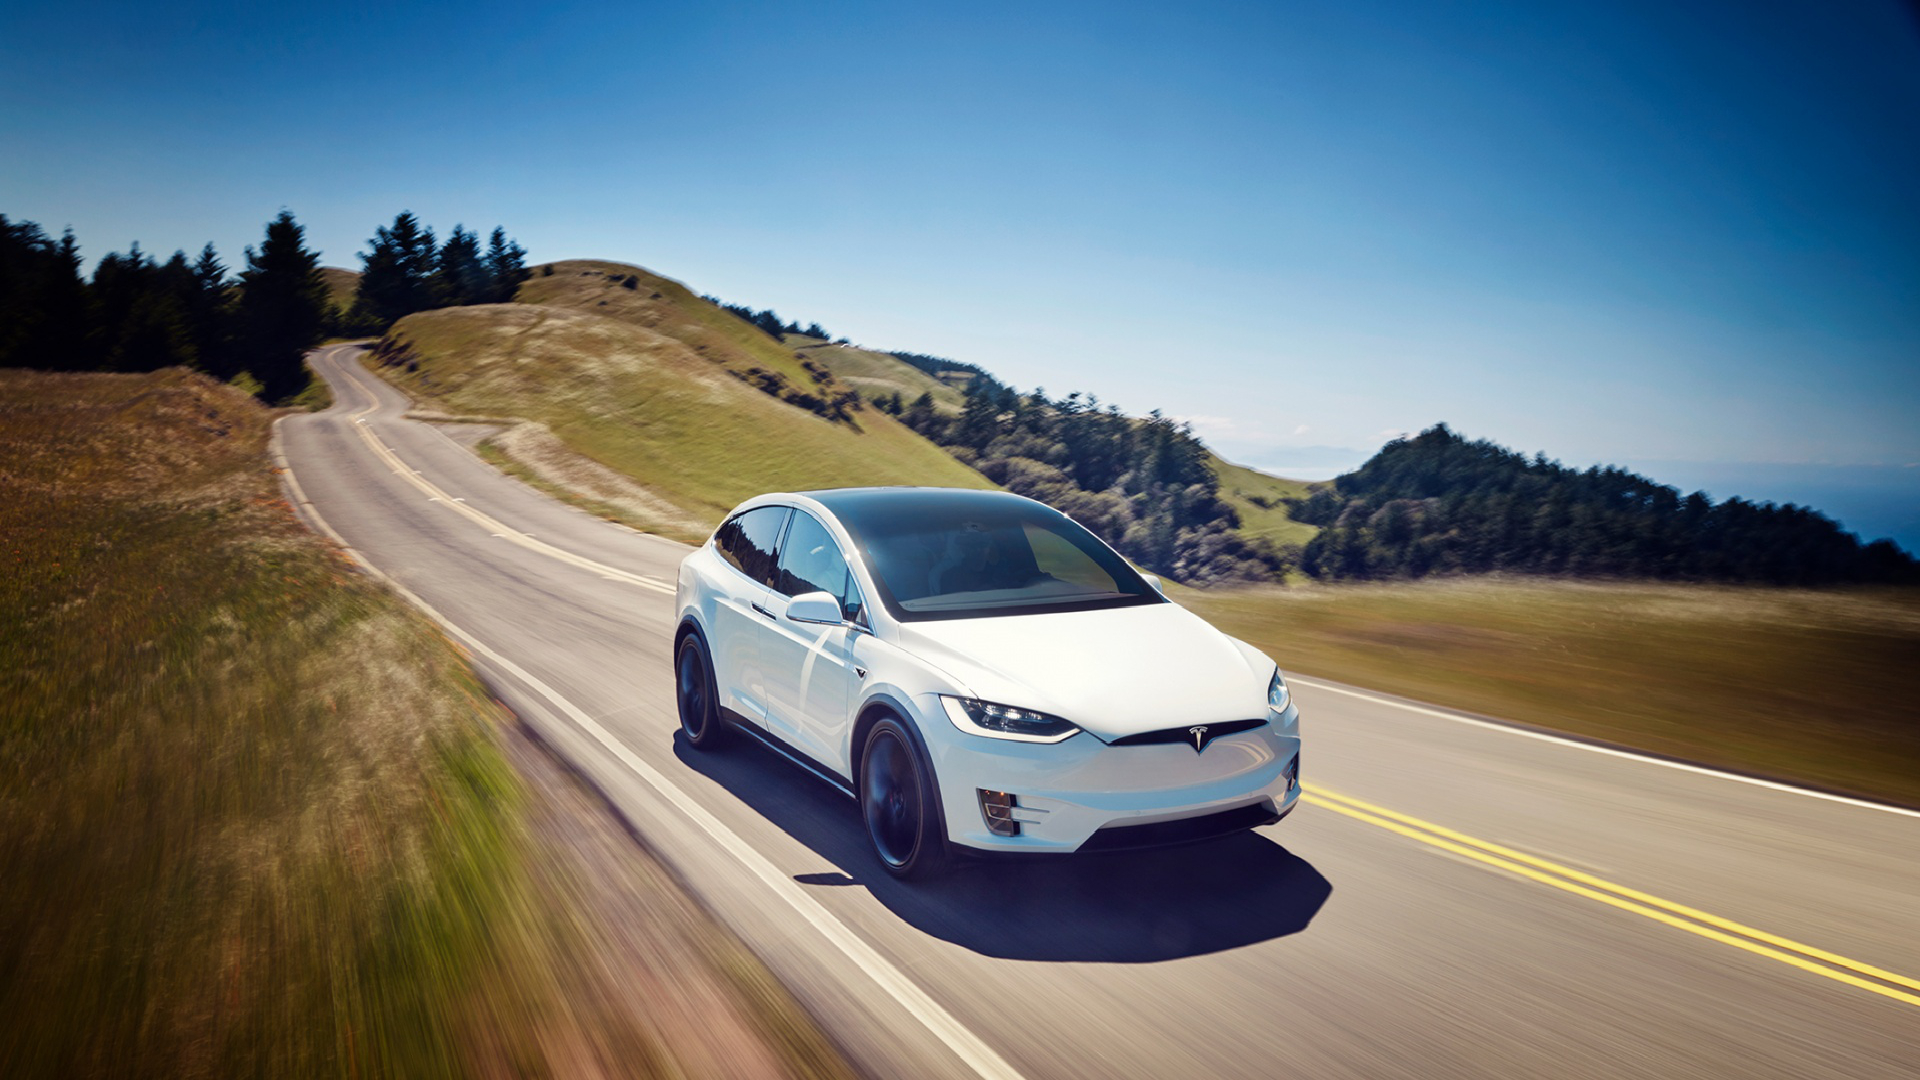 tesla,mold,downhill,electriccars,elevator car,driving,gondola,travel,-,greenenergy,machine,ecoenergy,cars,white,electriccar,vehicle,electric,cleanenergy,auto,motorcar,whiteness,sustainableenergy,mannequin,renewableenergy,poser,fashion model,car,trial,x,model,road